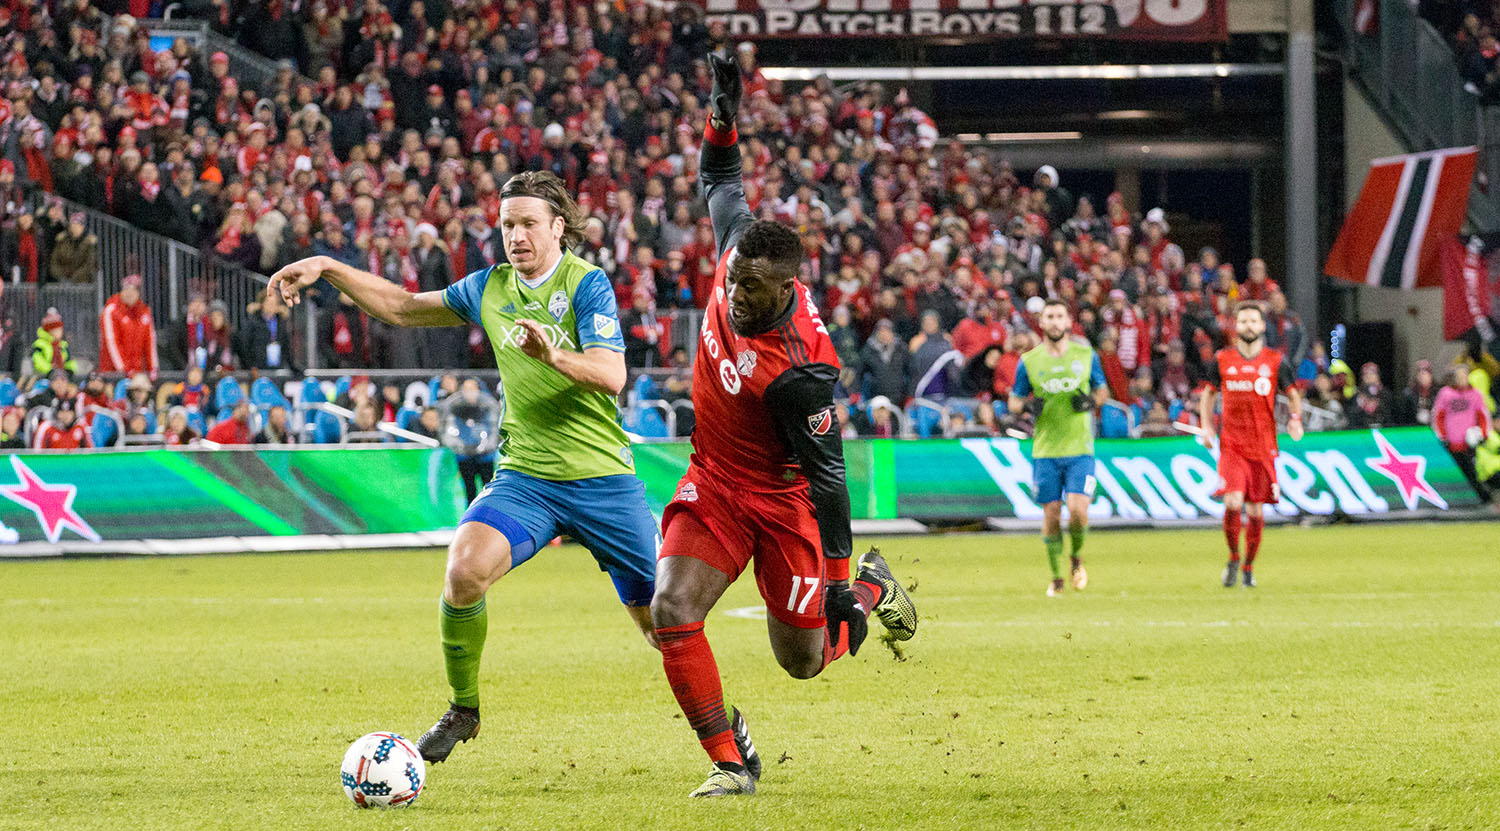 Jozy Altidore looks to take a shot on goal while a Seattle Sounders defender attempts to put a stop to that.Image by Dennis Marciniak of denMAR Media.